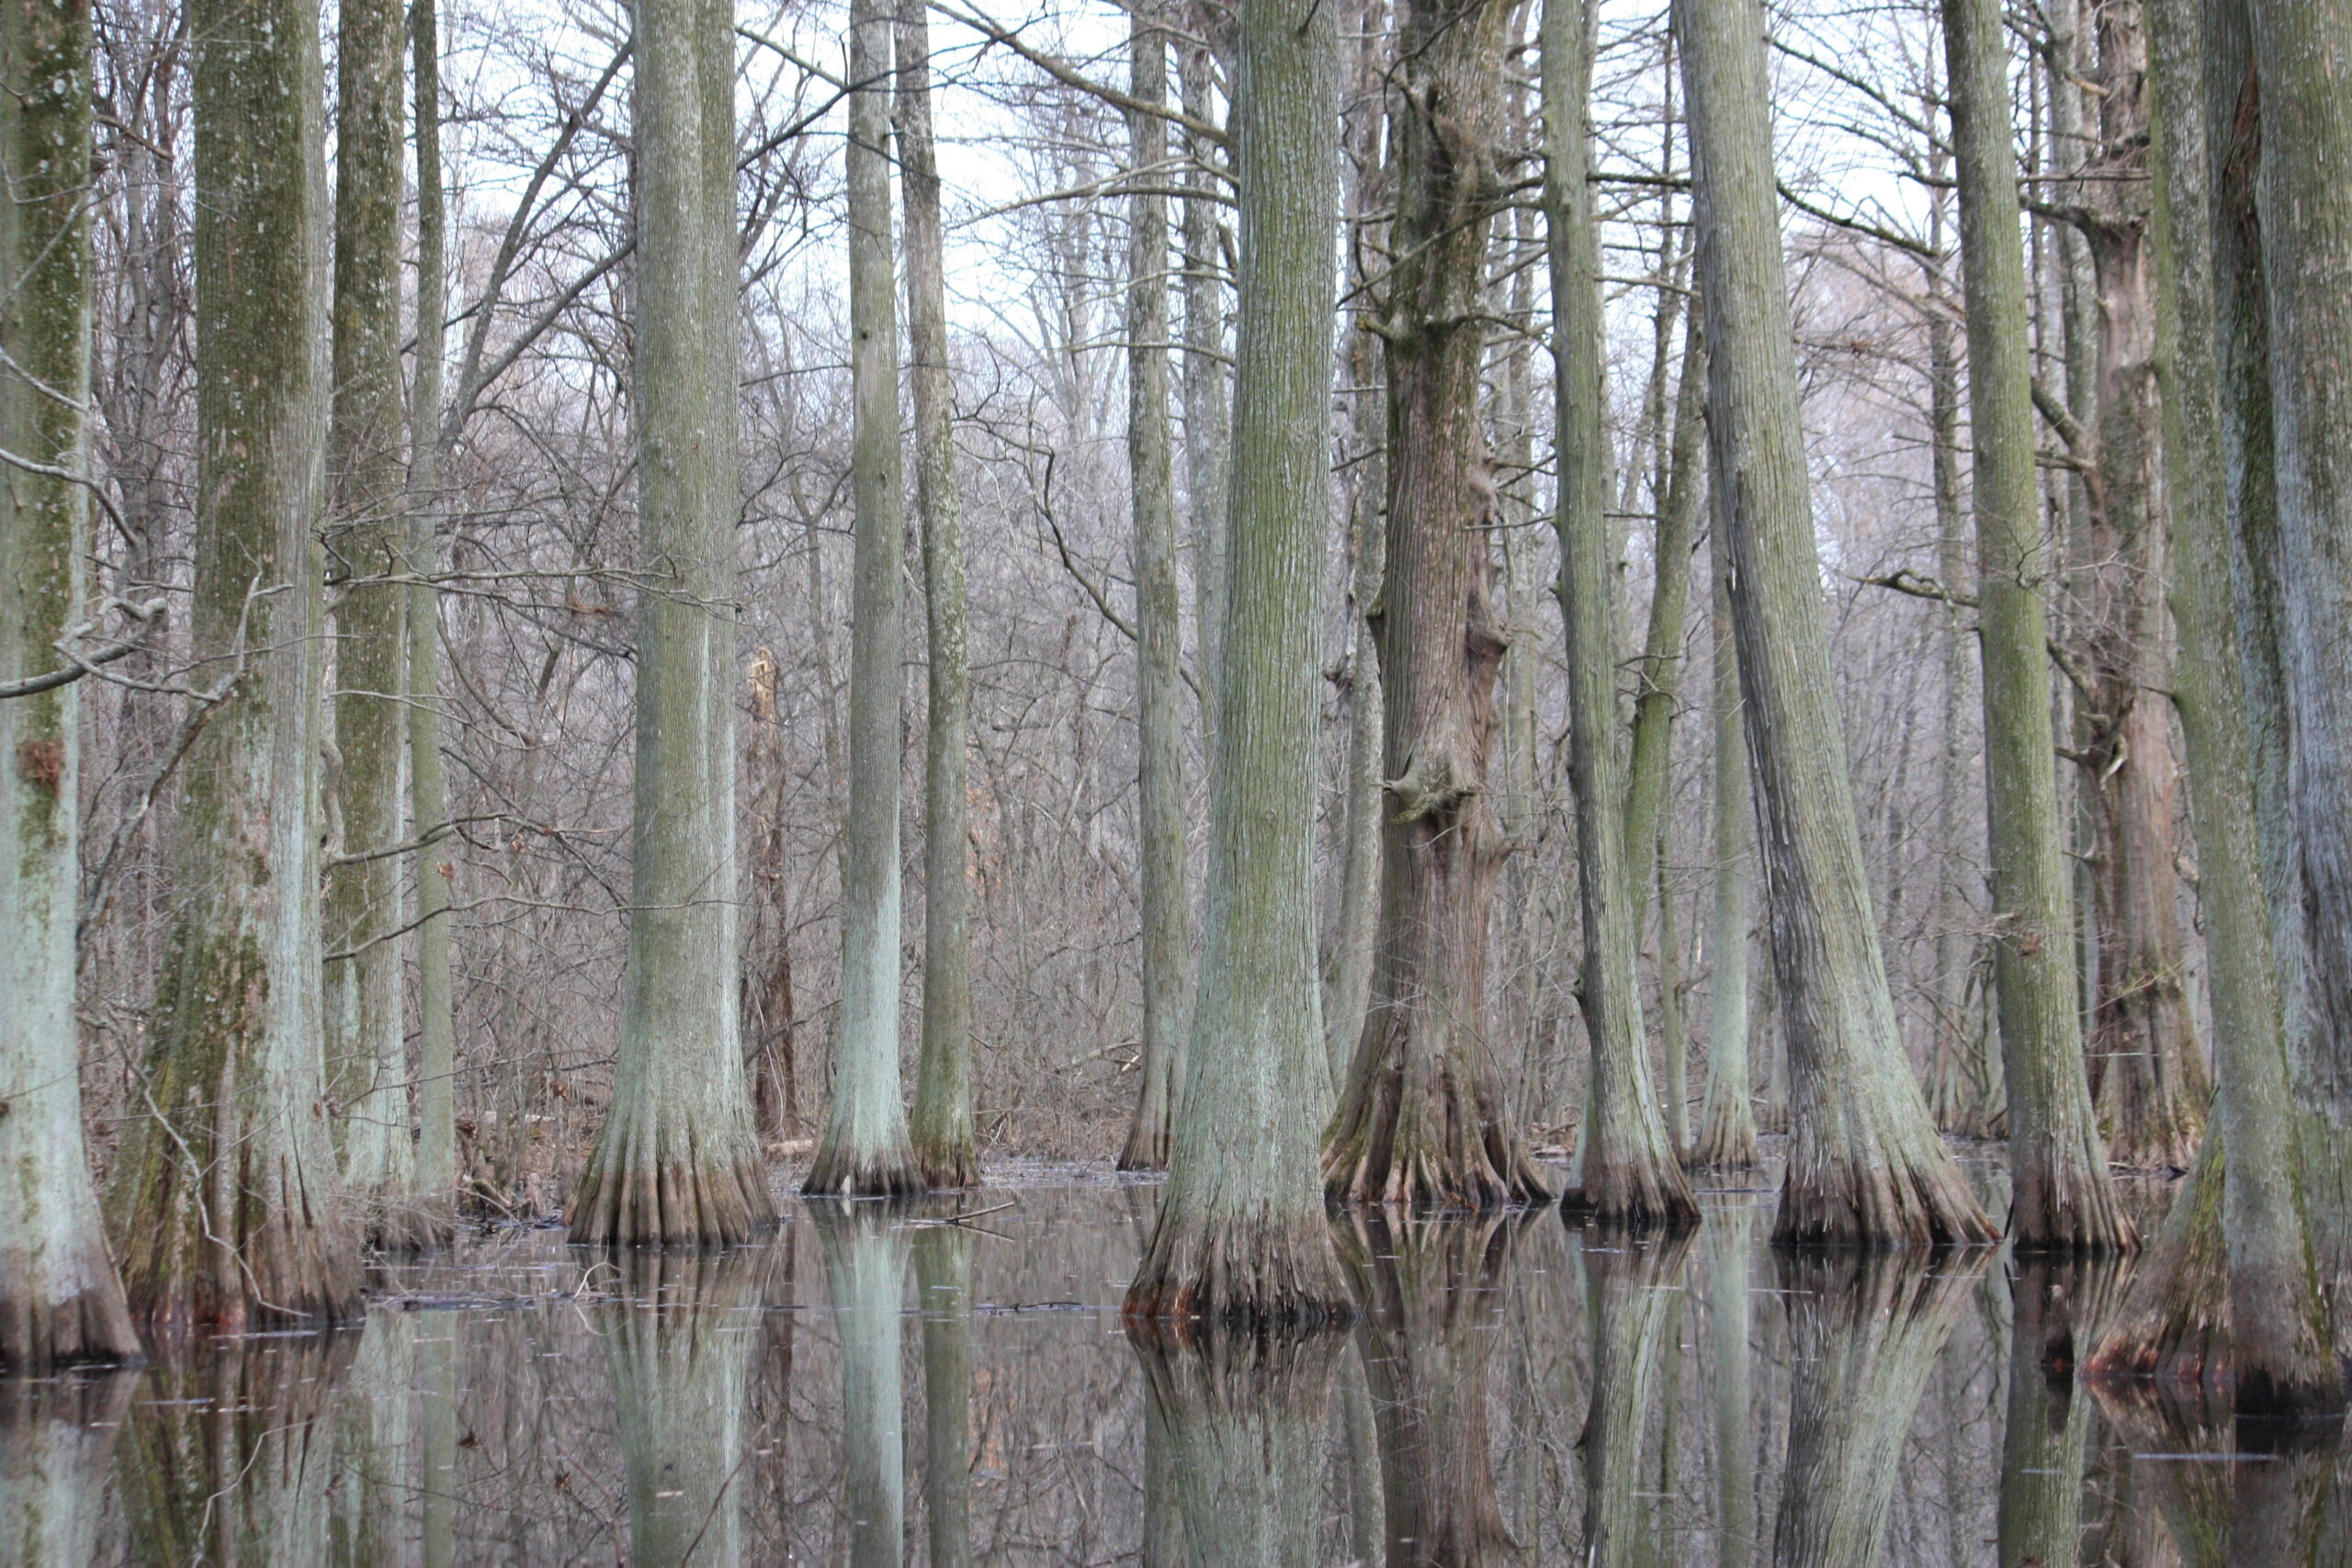 Cyprus trees on Reelfoot Lake in Tennessee, where two men were killed in January 2021.